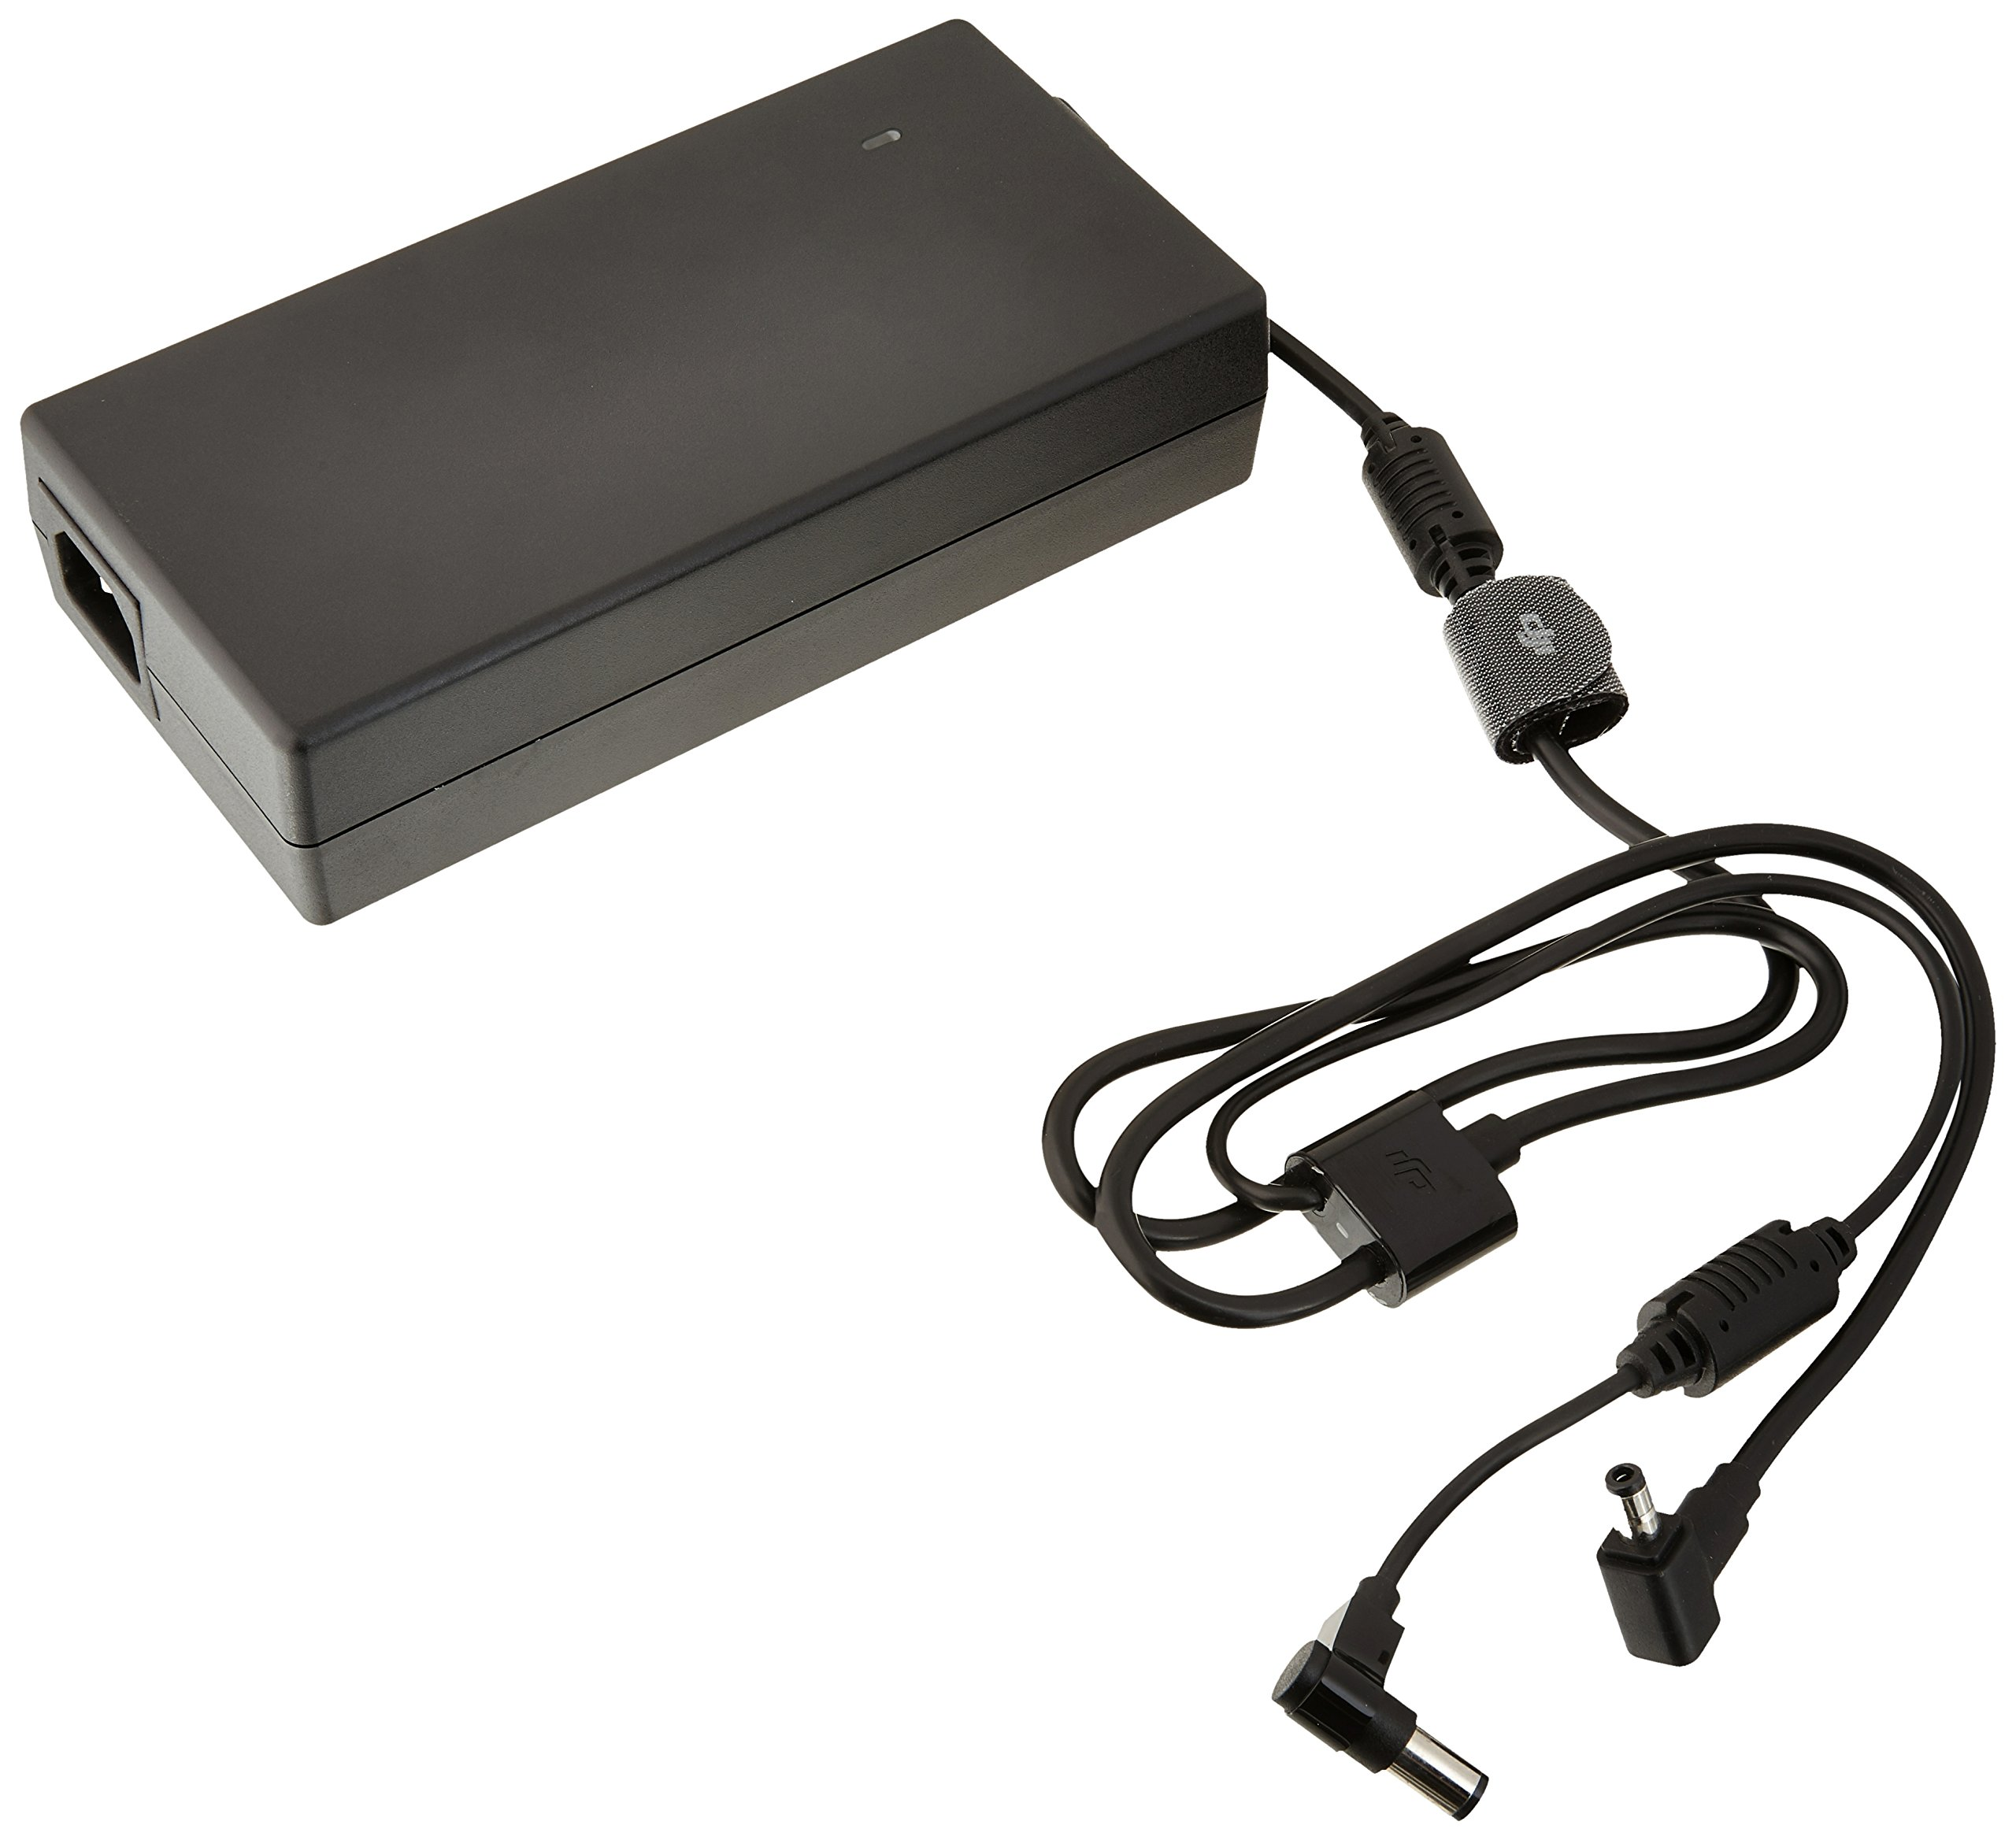 DJI Inspire 2 - 180W Battery Charger (without AC cable) by DJI